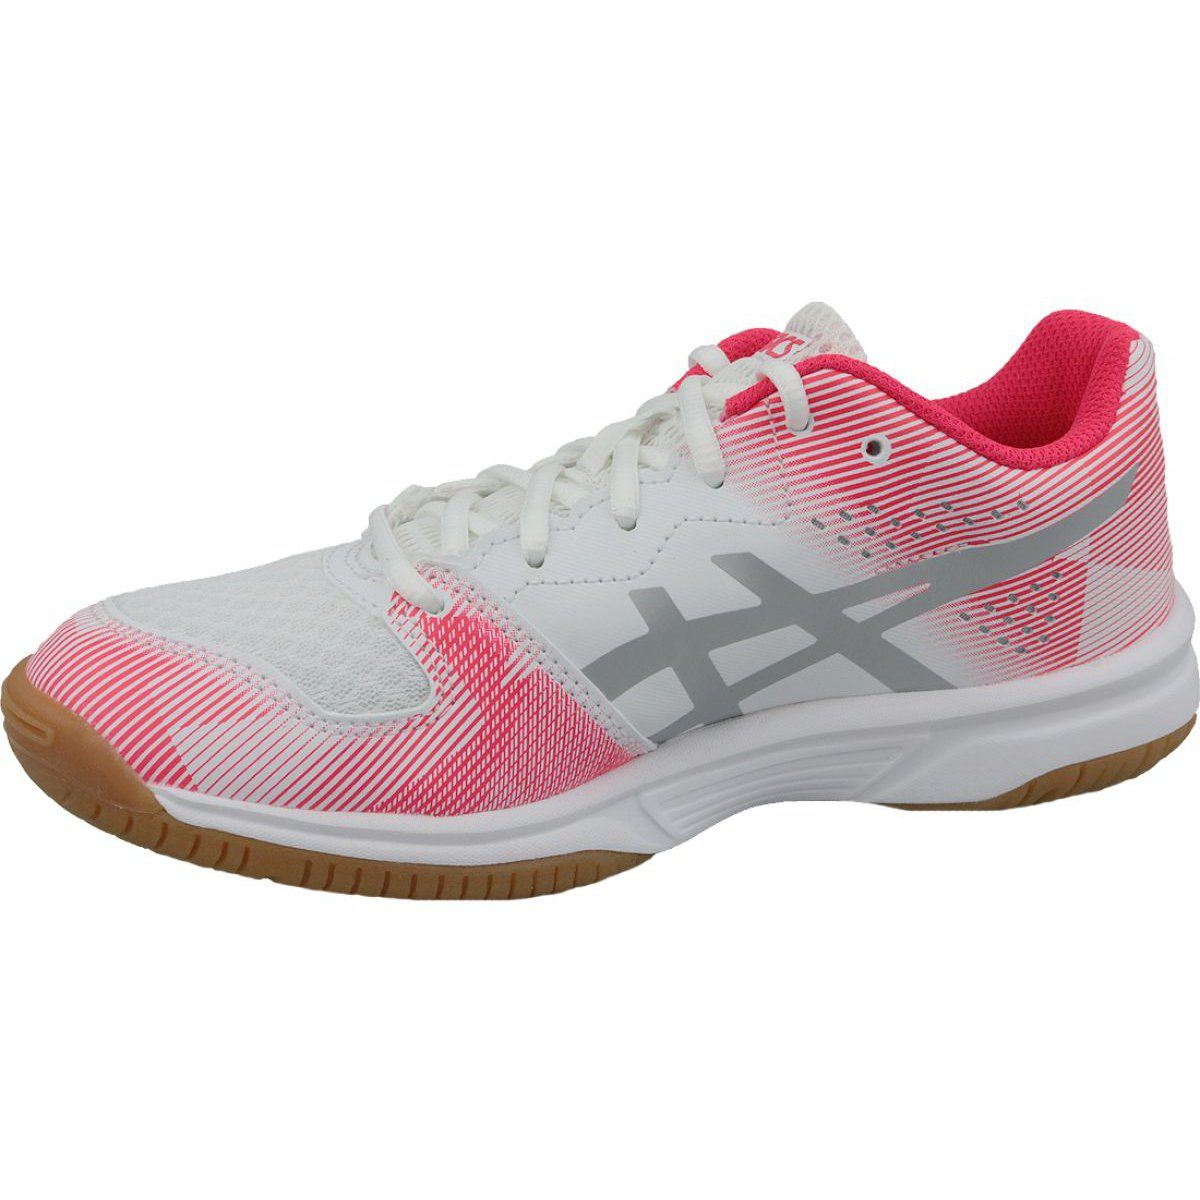 Volleyball Shoes Asics Gel Tactic Gs Jr 1074a014 101 White Grey Volleyball Shoes Asics Volleyball Shoes Asics